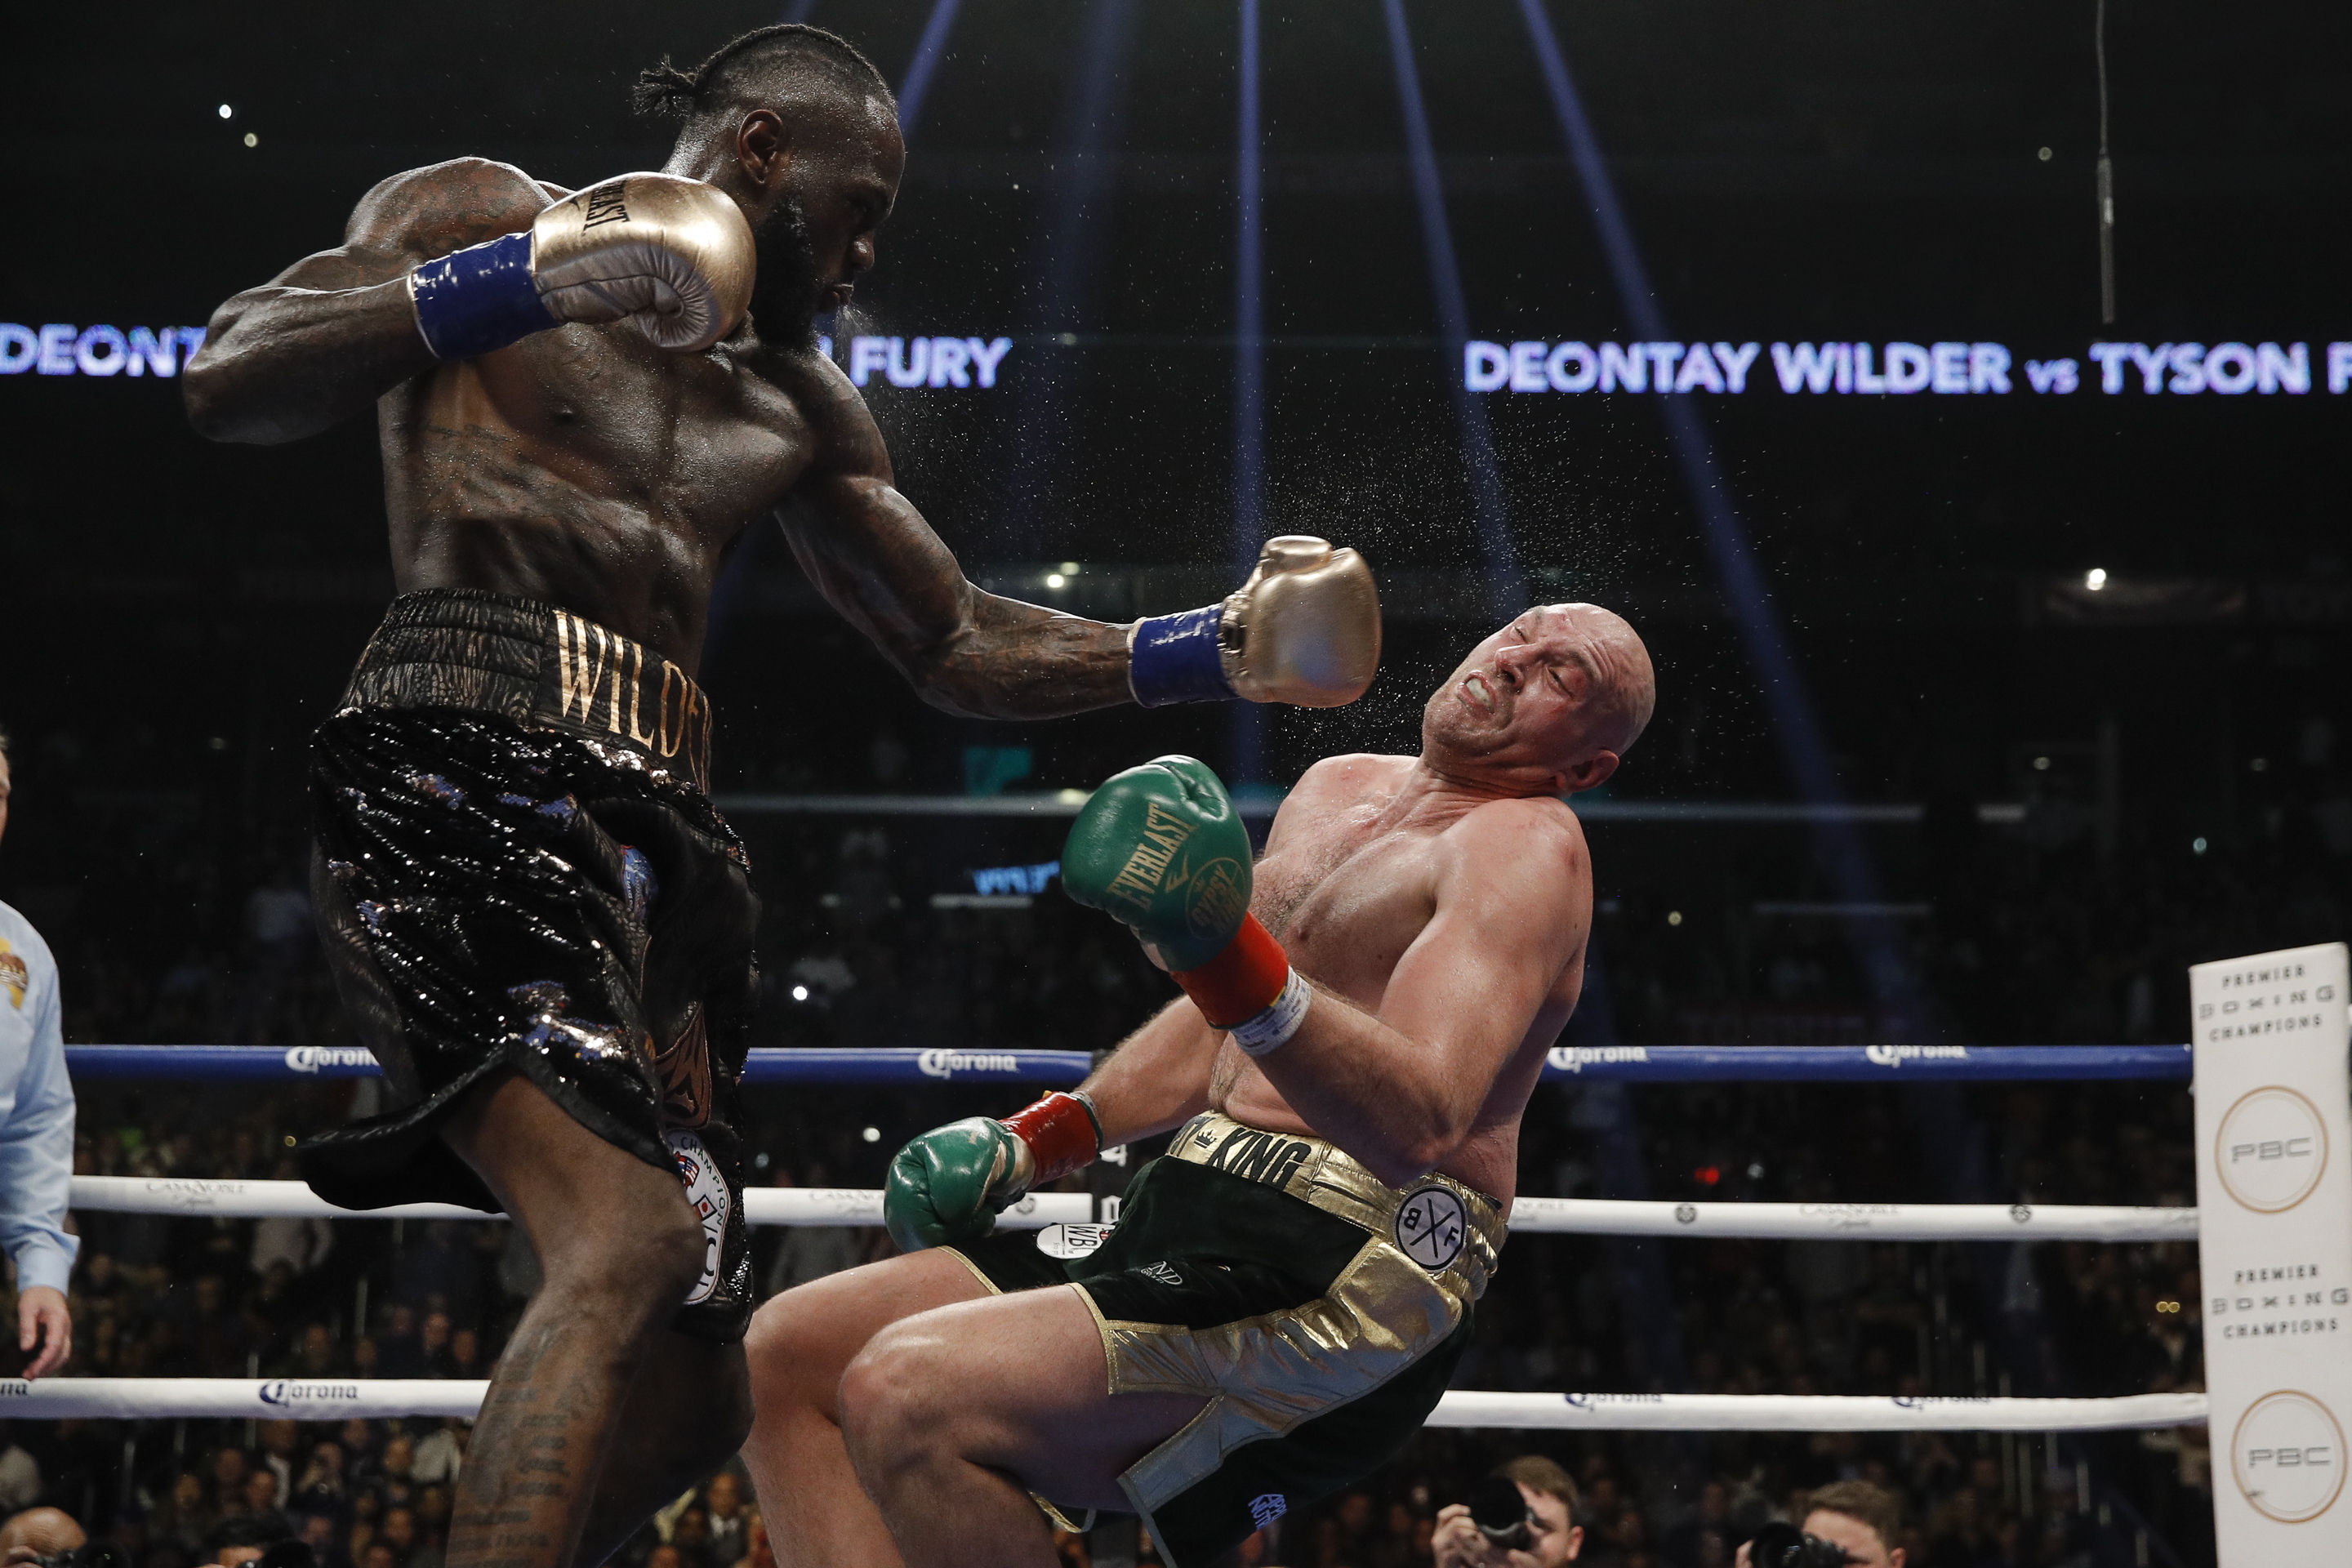 WBC heavyweight titlist Deontay Wilder (left) vs. lineal heavyweight champion Tyson Fury. Esther Lin/Showtime